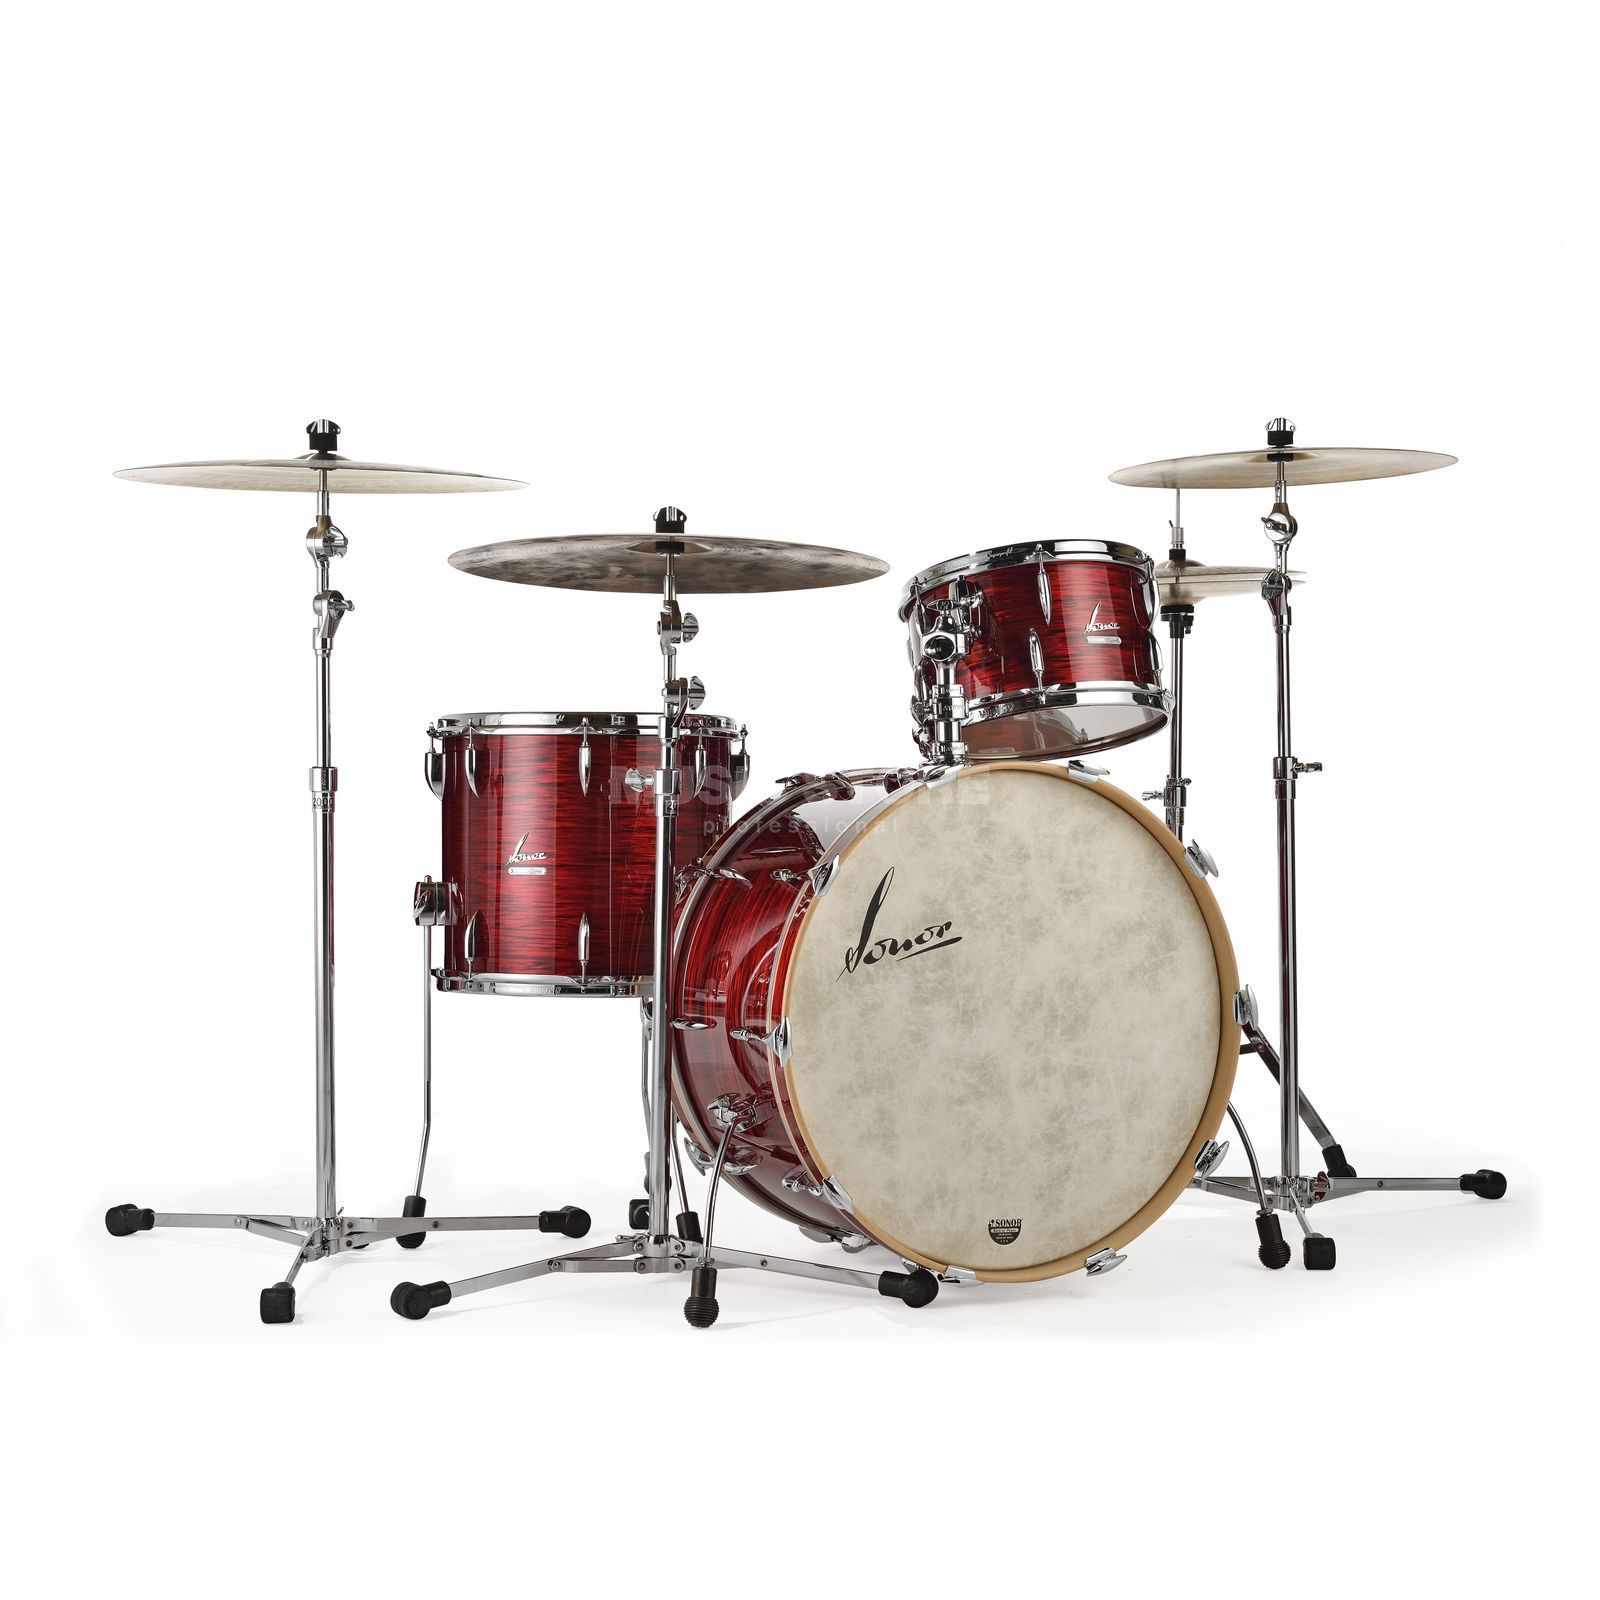 Sonor Vintage Series Three20, Vintage Red Oyster, w/mount Produktbillede